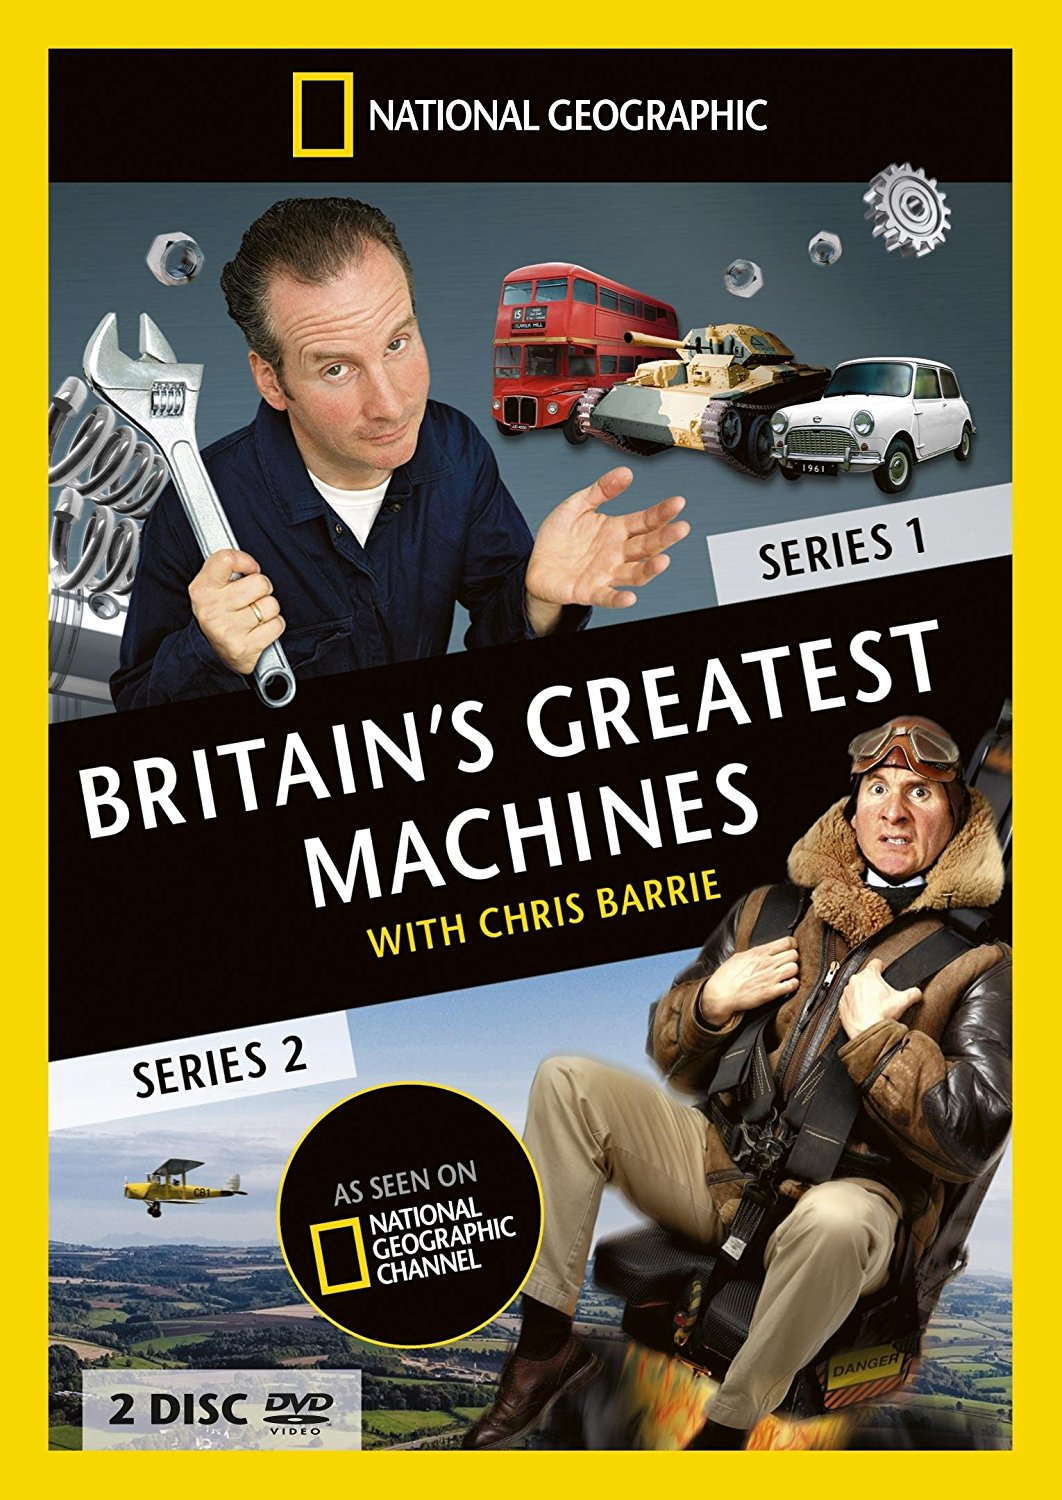 Britain's Greatest Machines with Chris Barrie kapak